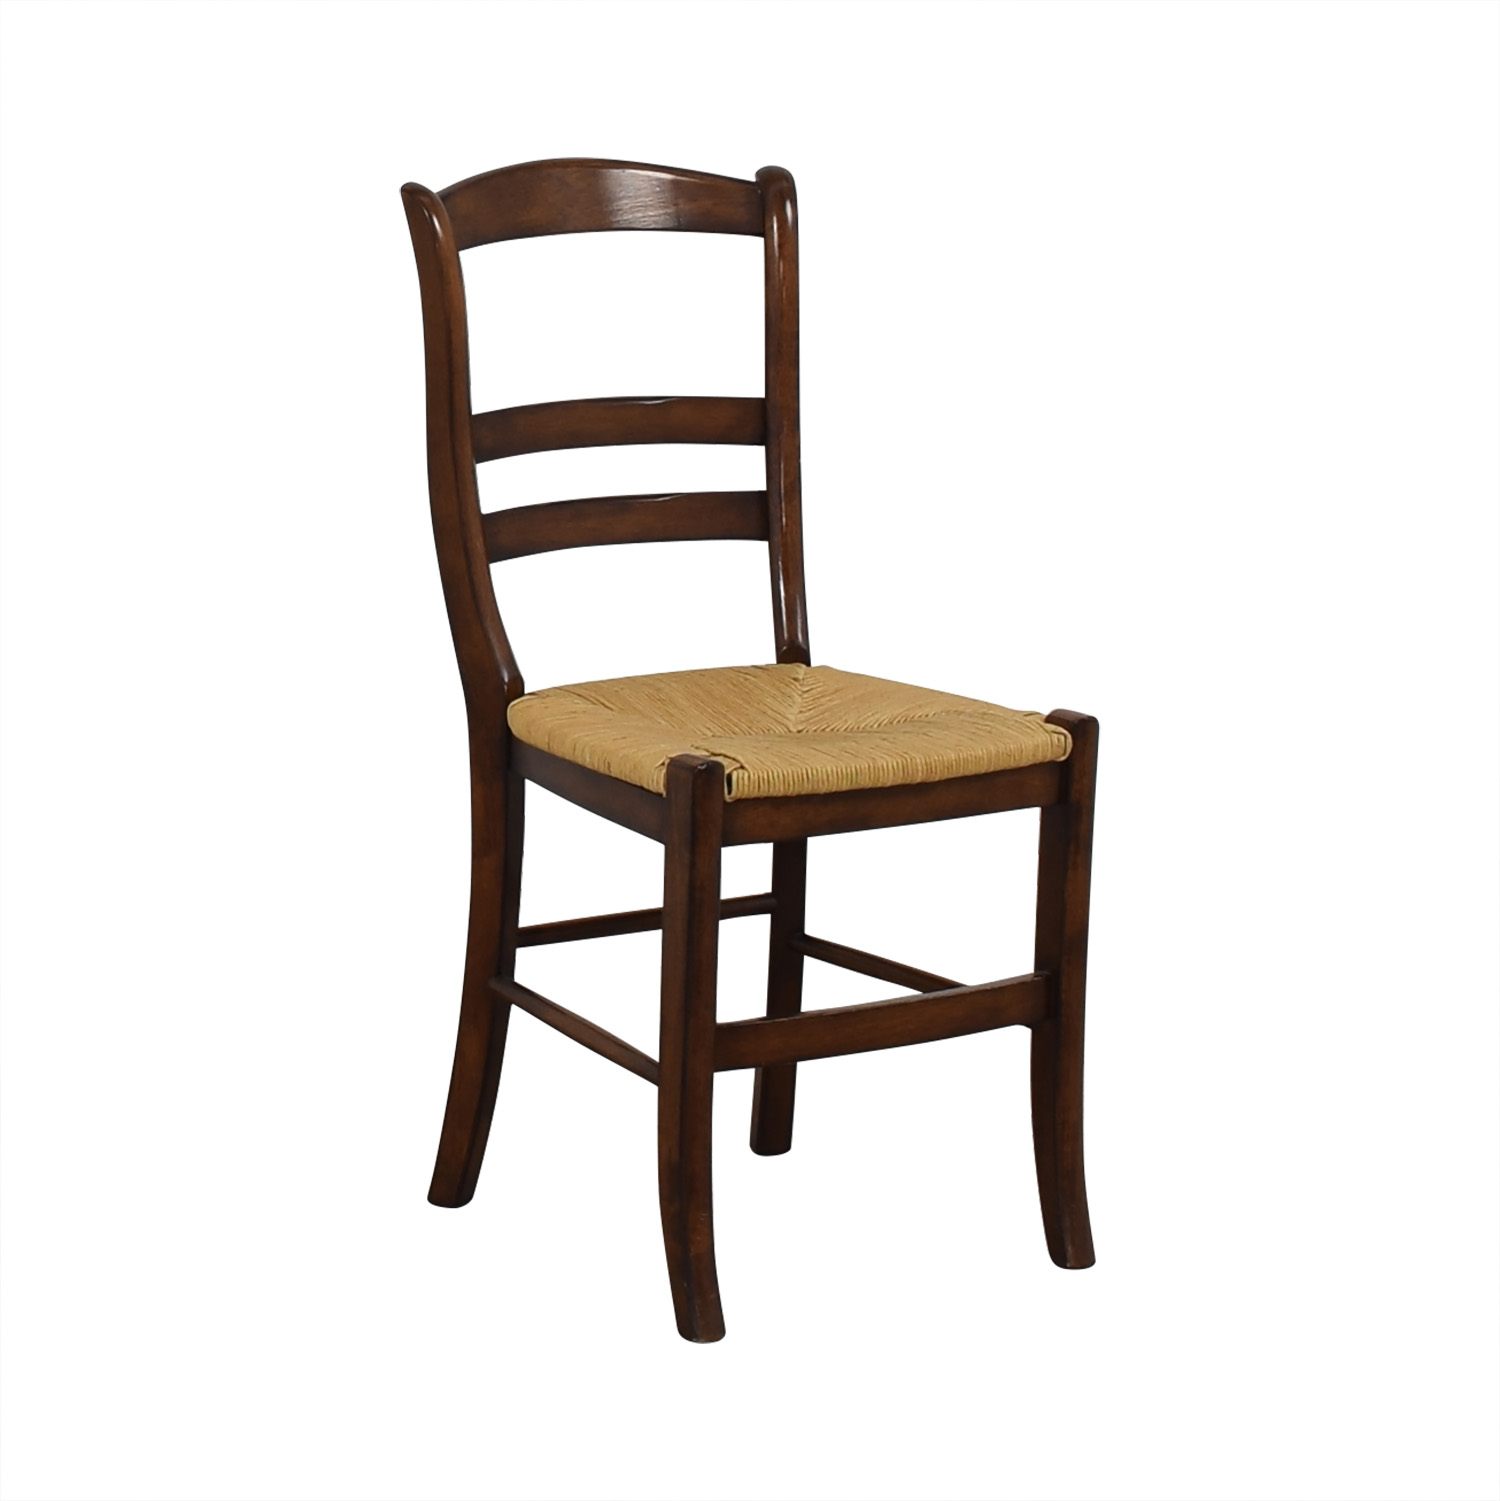 Pottery Barn Pottery Barn Isabella Dining Chair for sale